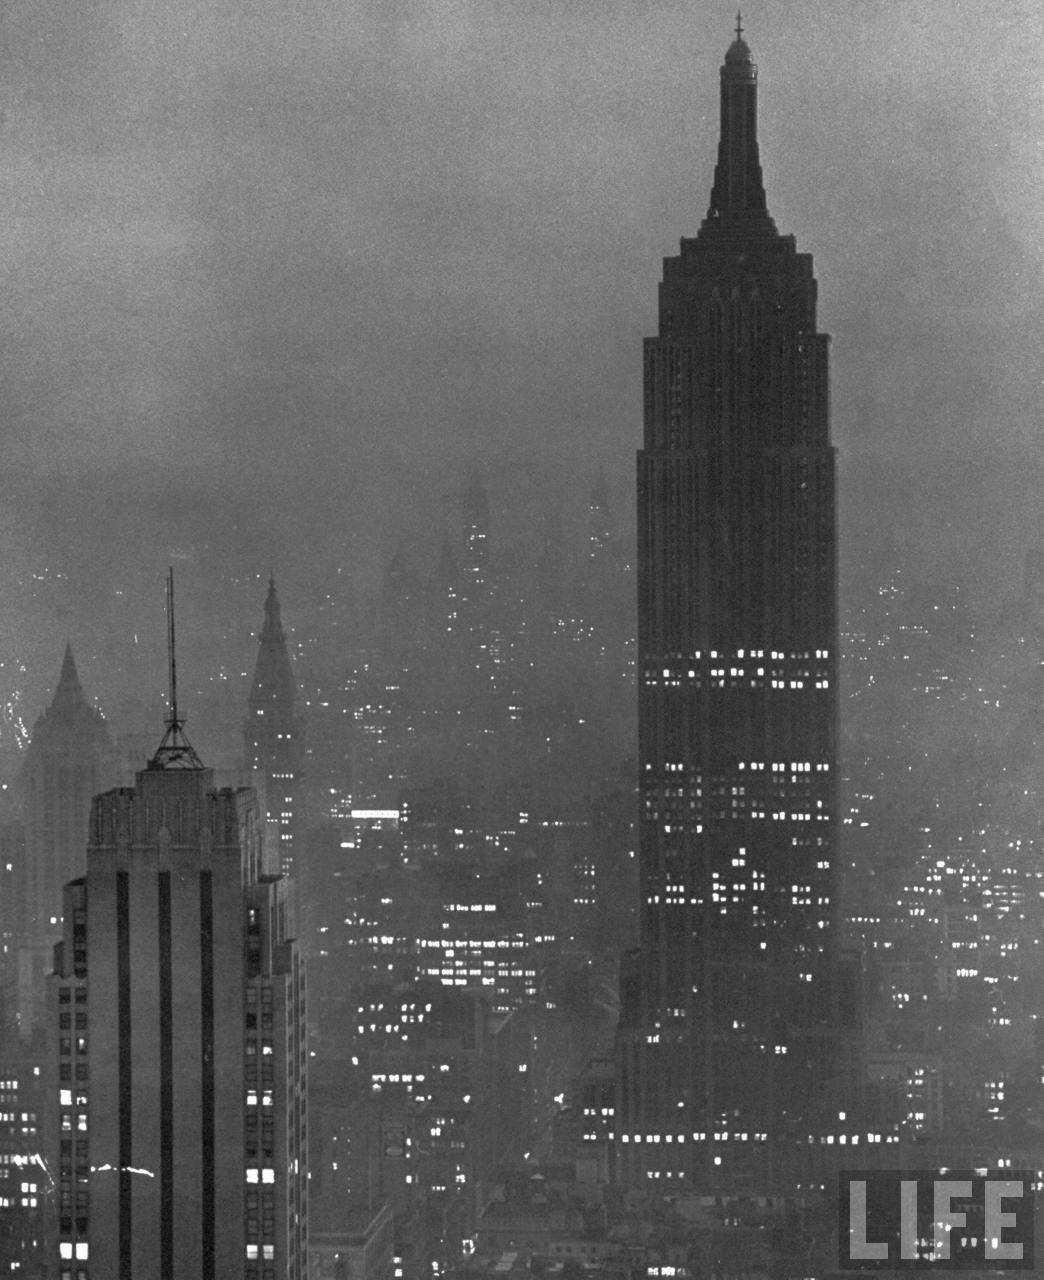 New York dimout during wartime to conserve city's energy costs, 1943. By Andreas Feininger